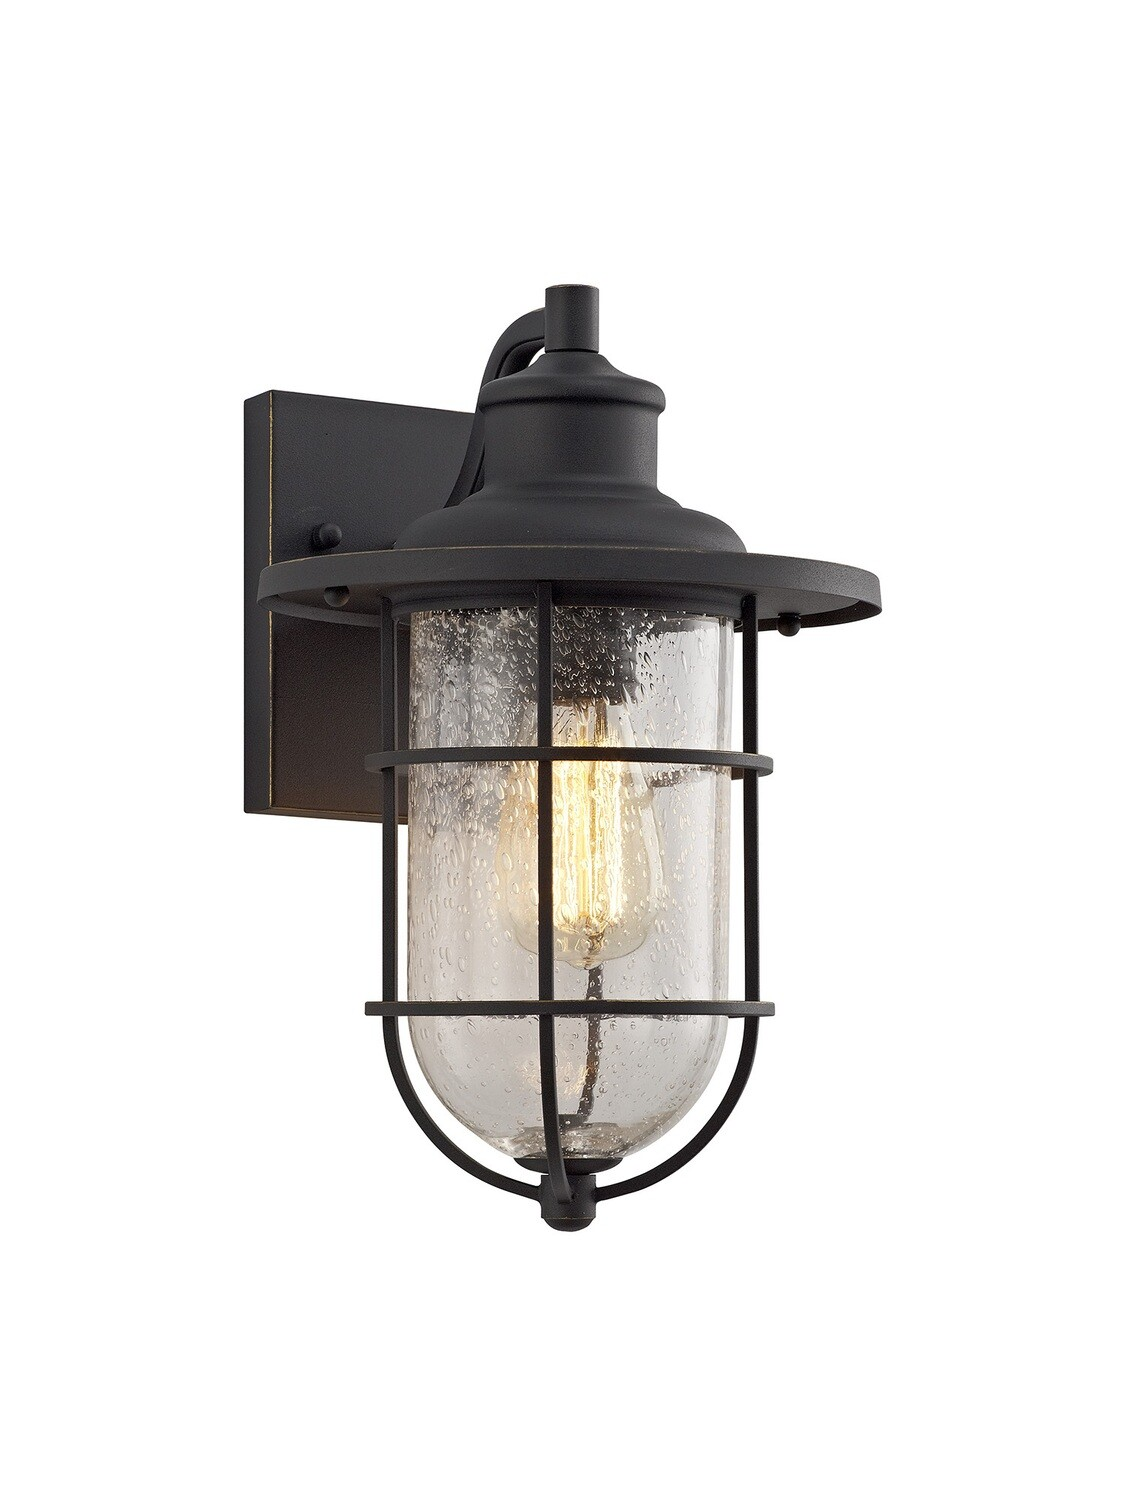 Gara Wall lamp, 1 x E27, Black/Gold With Seeded Clear Glass, IP54